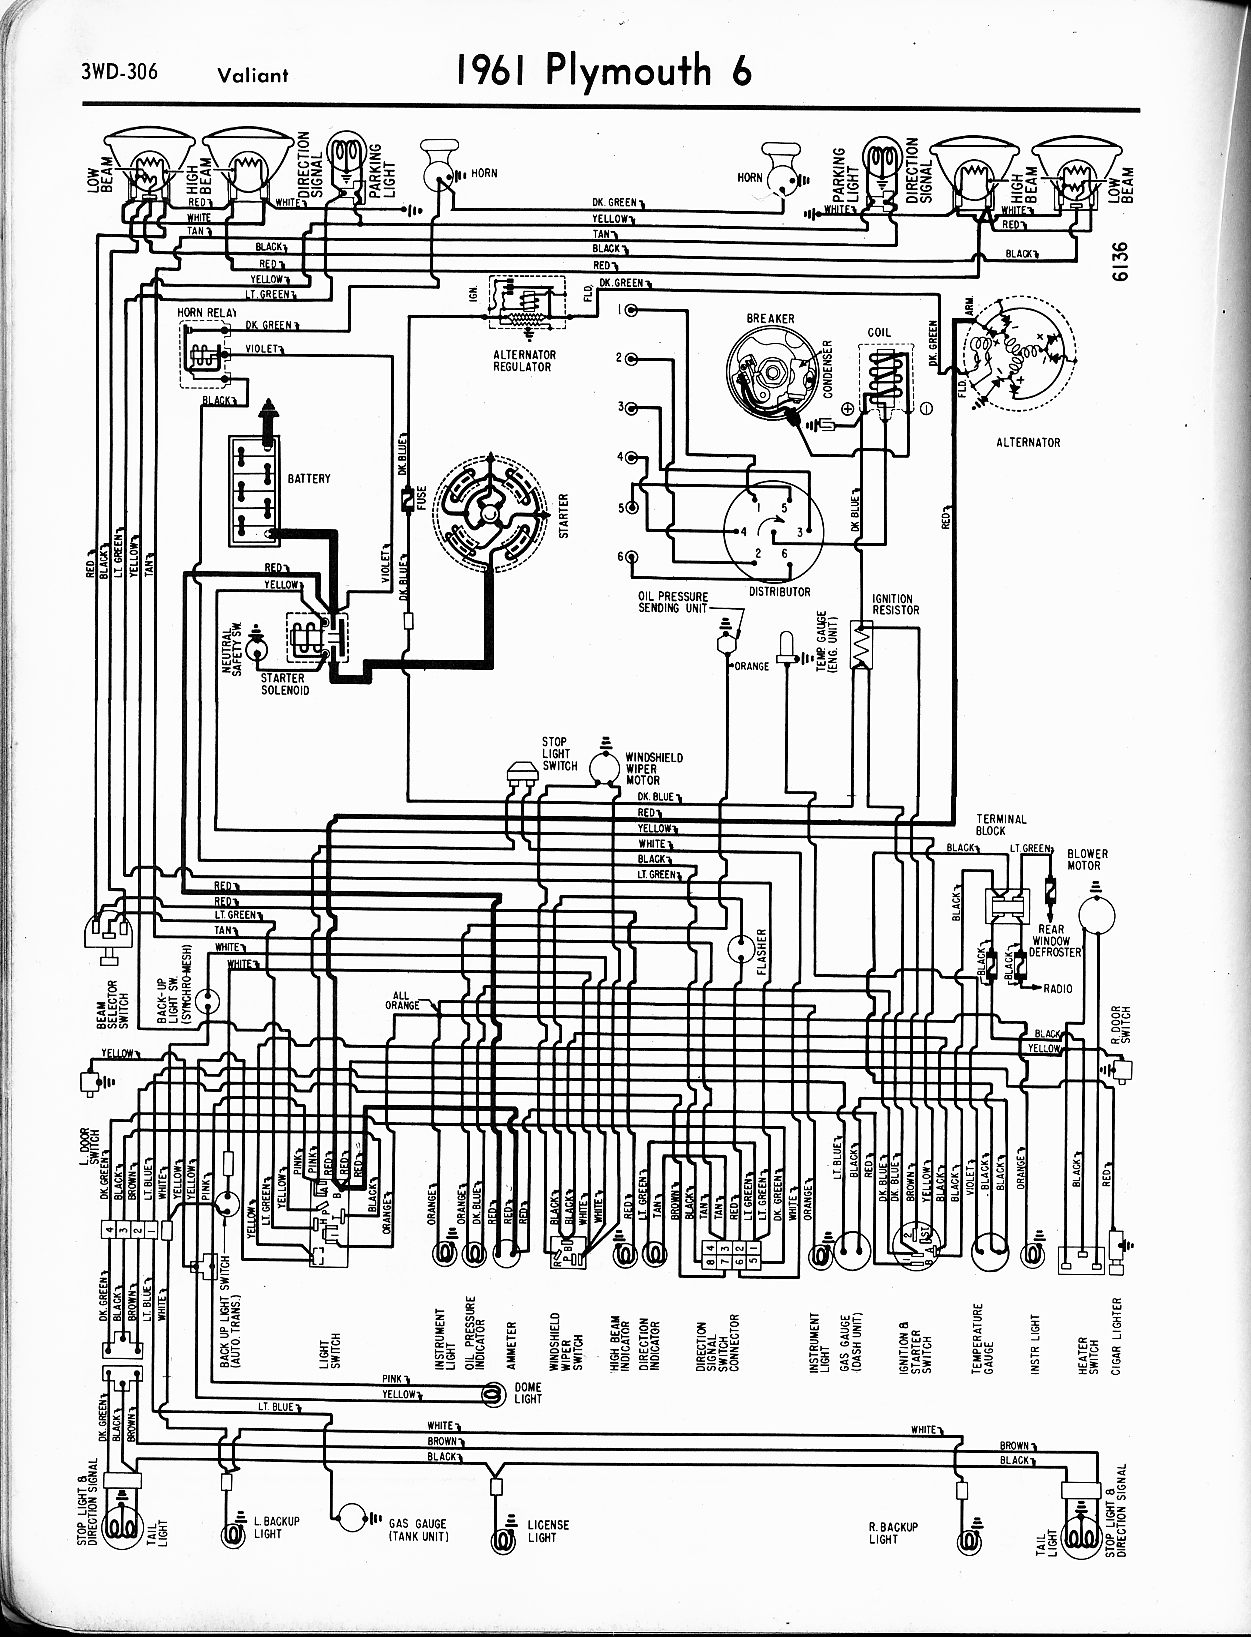 hight resolution of 1969 plymouth wiring schematic wiring diagram expert 1969 plymouth wiring harness wiring diagram split 1969 plymouth